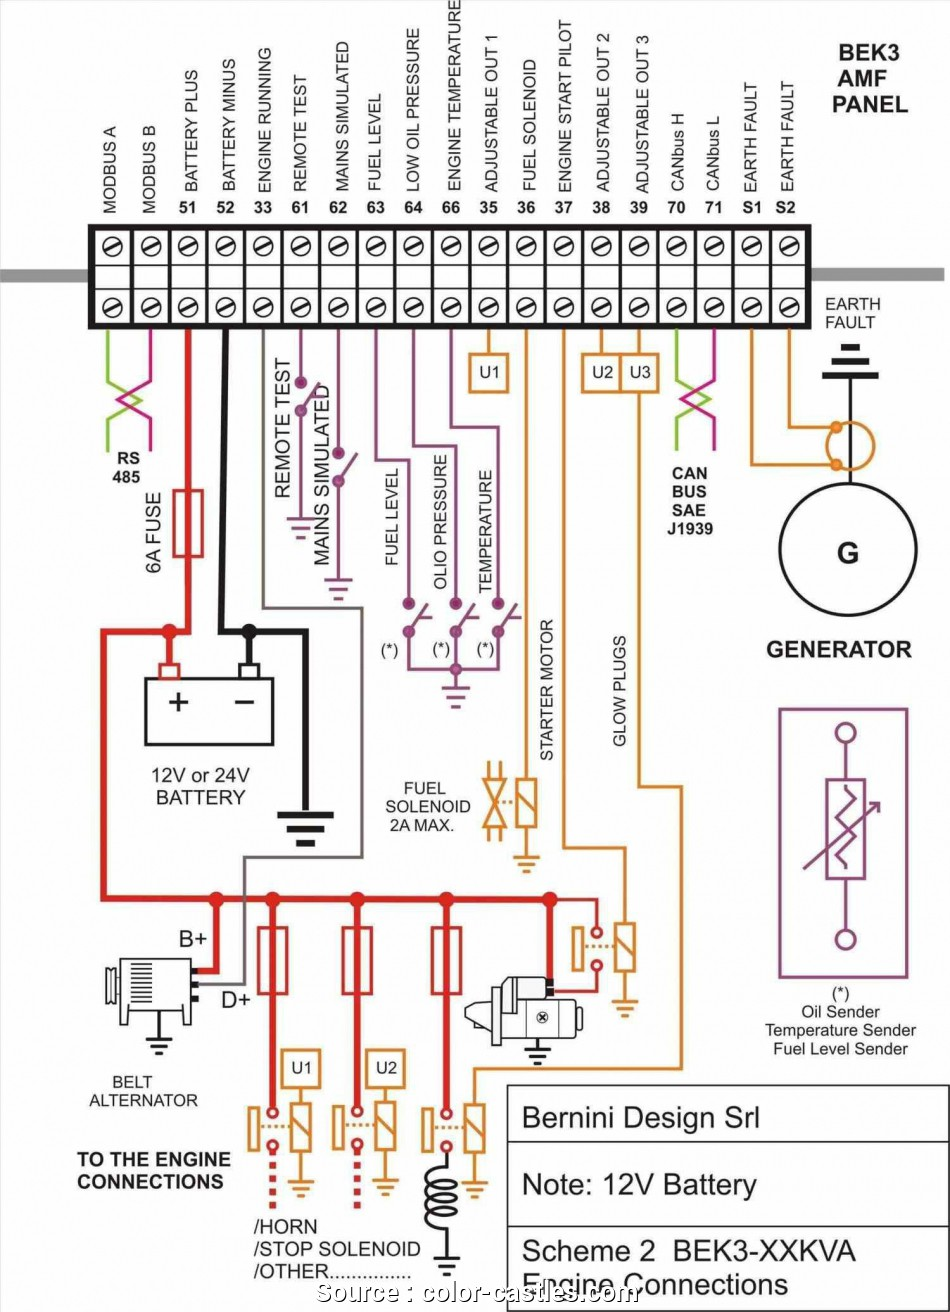 Honeywell Humidifier Wiring Diagram from static-cdn.imageservice.cloud